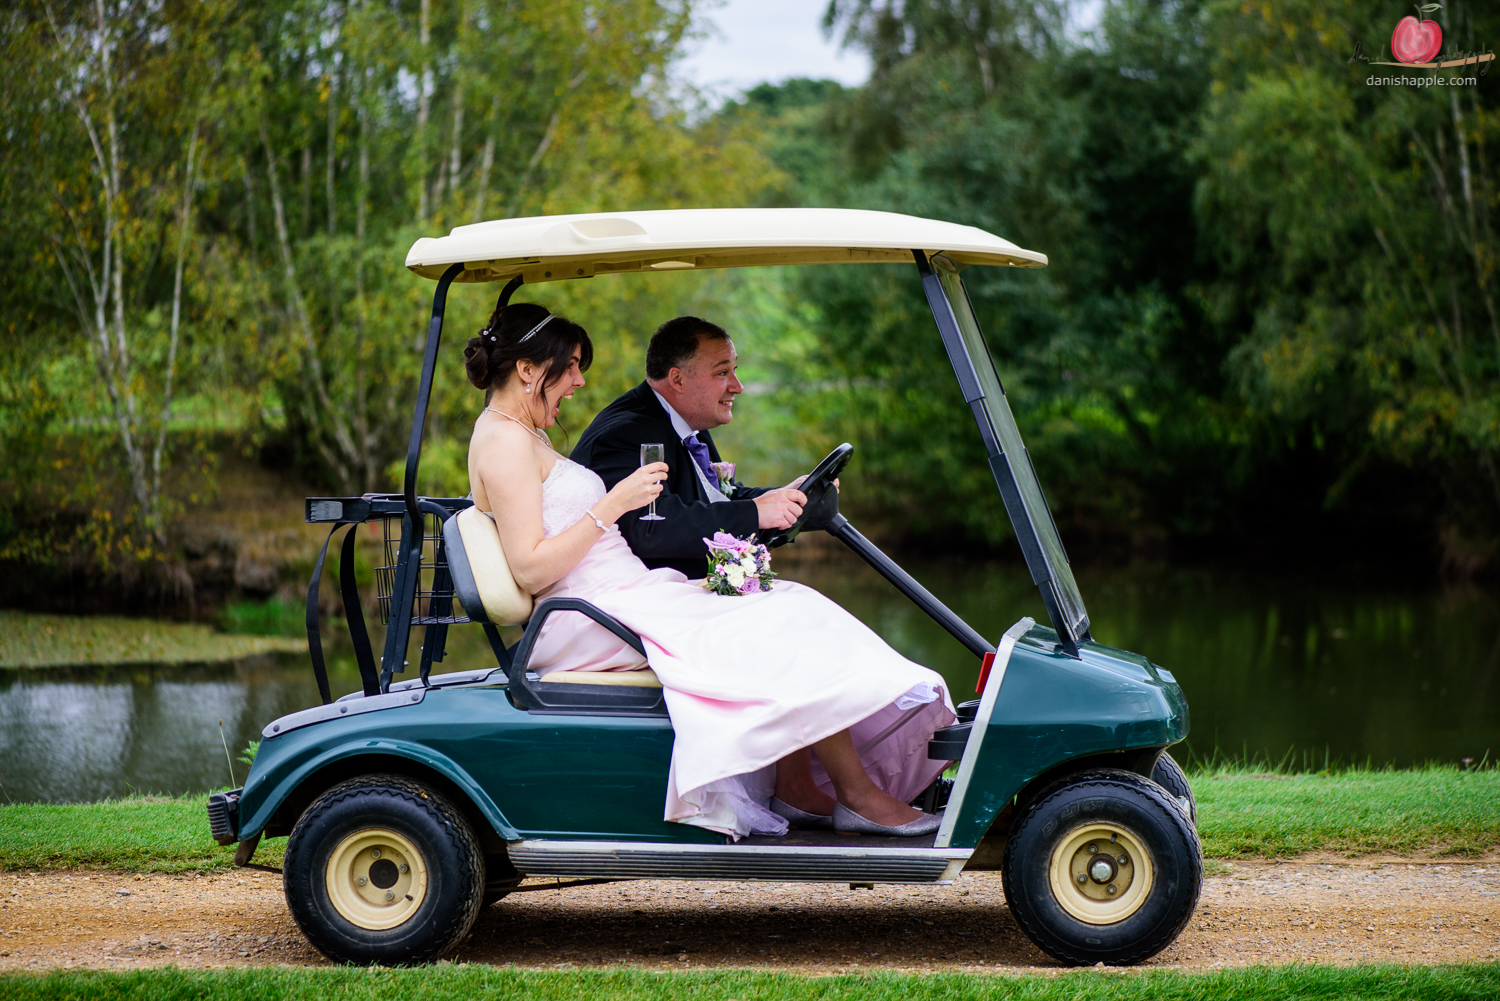 Bride and groom in golf buggy shot with Nikon D810